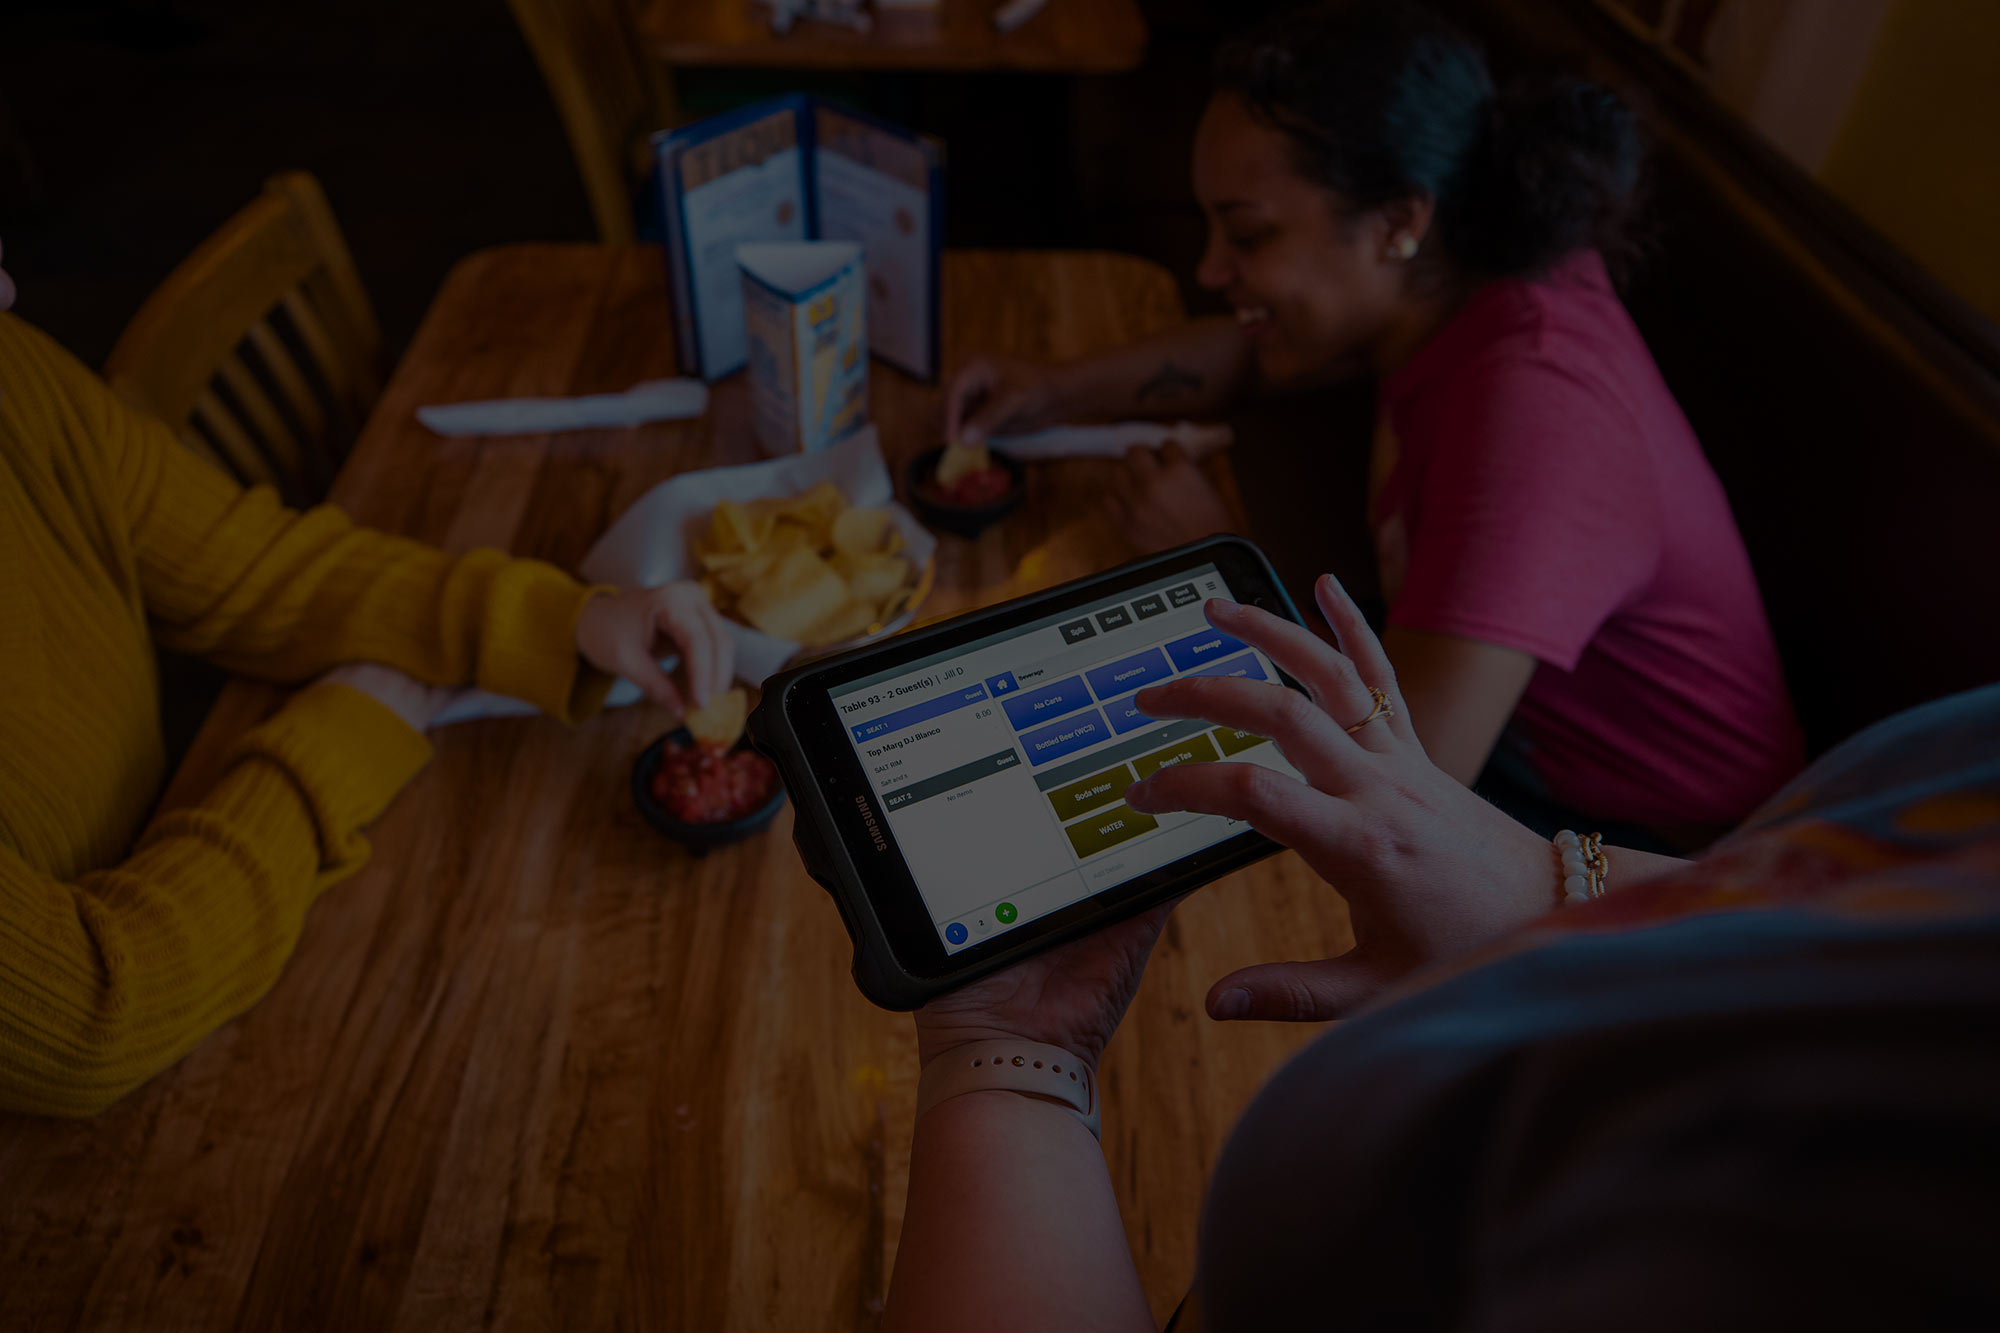 server using a mobile device for ordering from guests